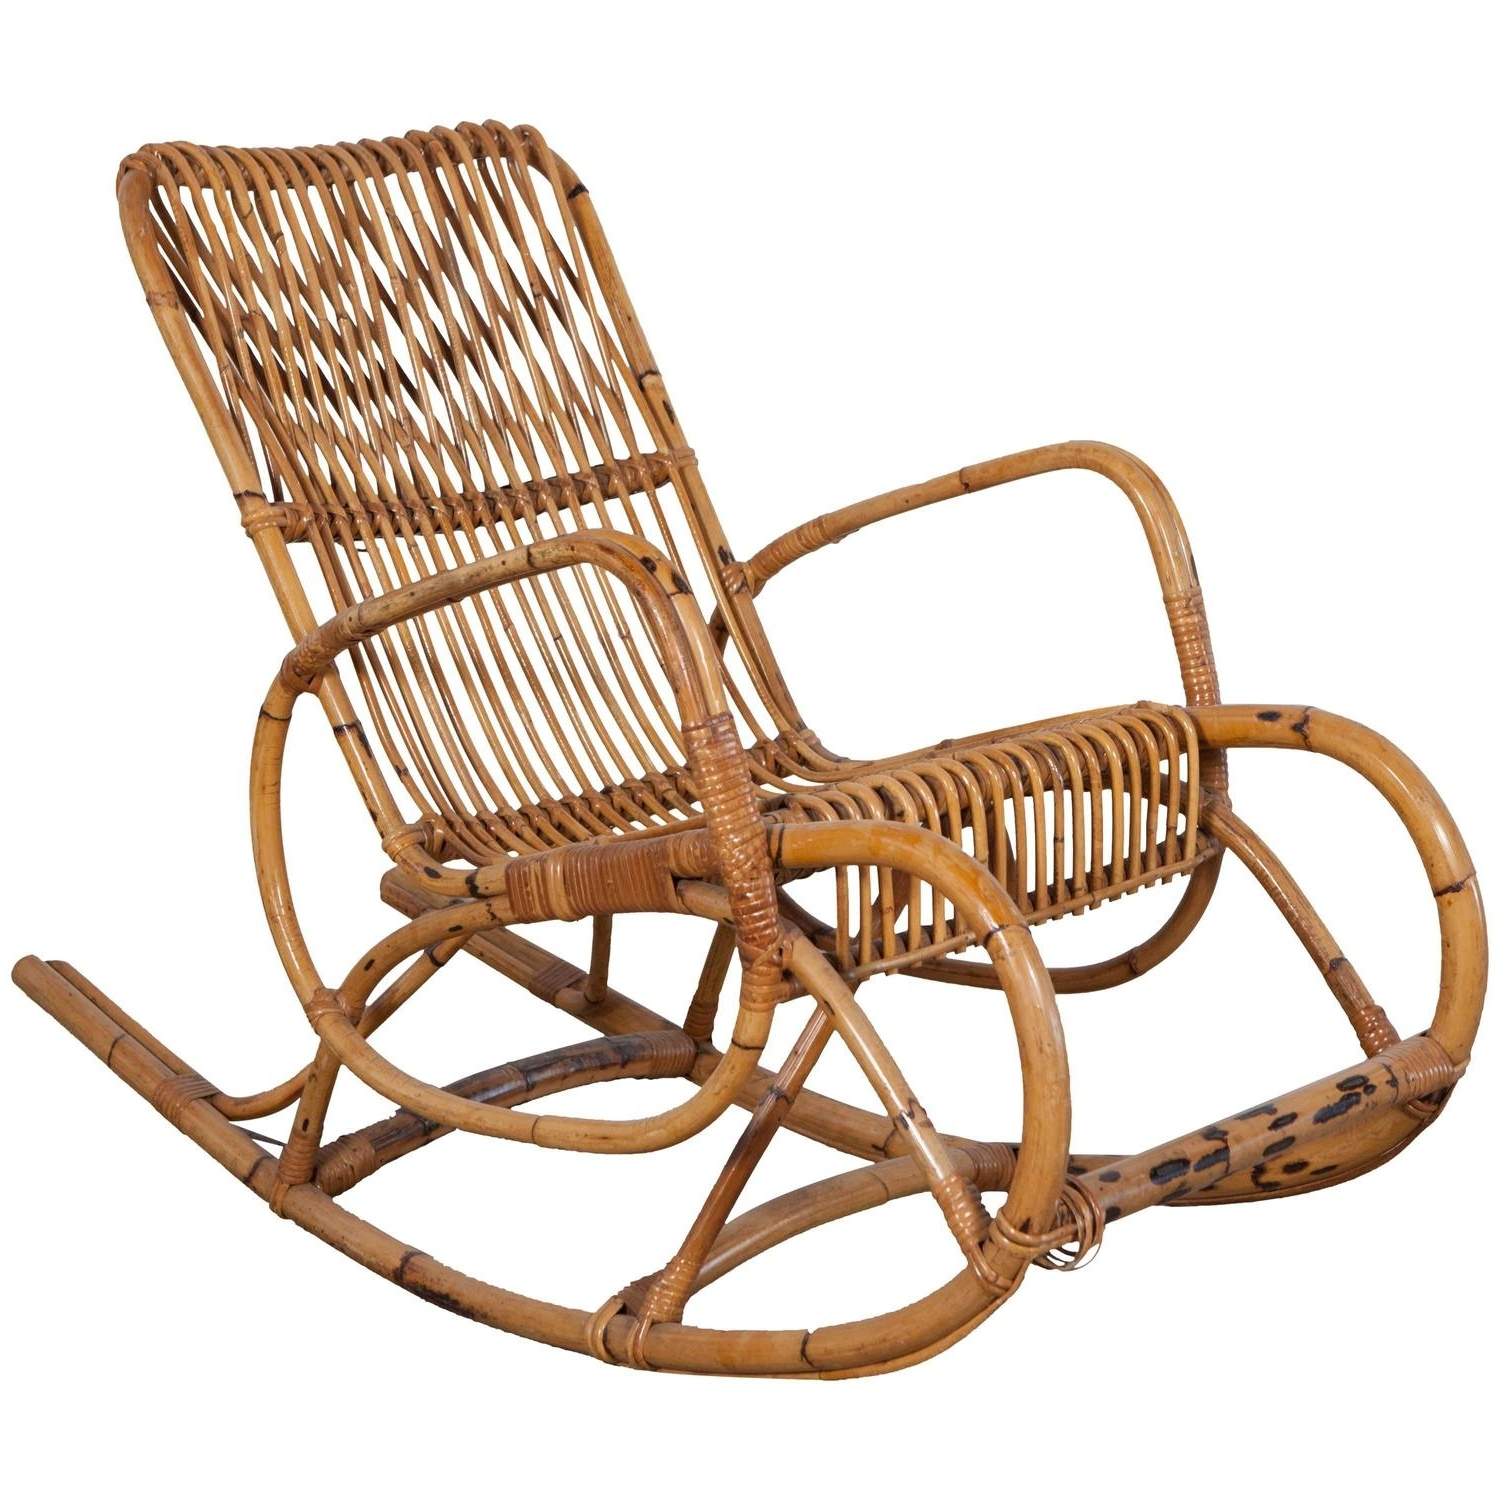 Vintage Italian Bamboo Rocking Chair With Square Arms At 1stdibs Throughout Well Liked Rocking Chairs (View 17 of 20)